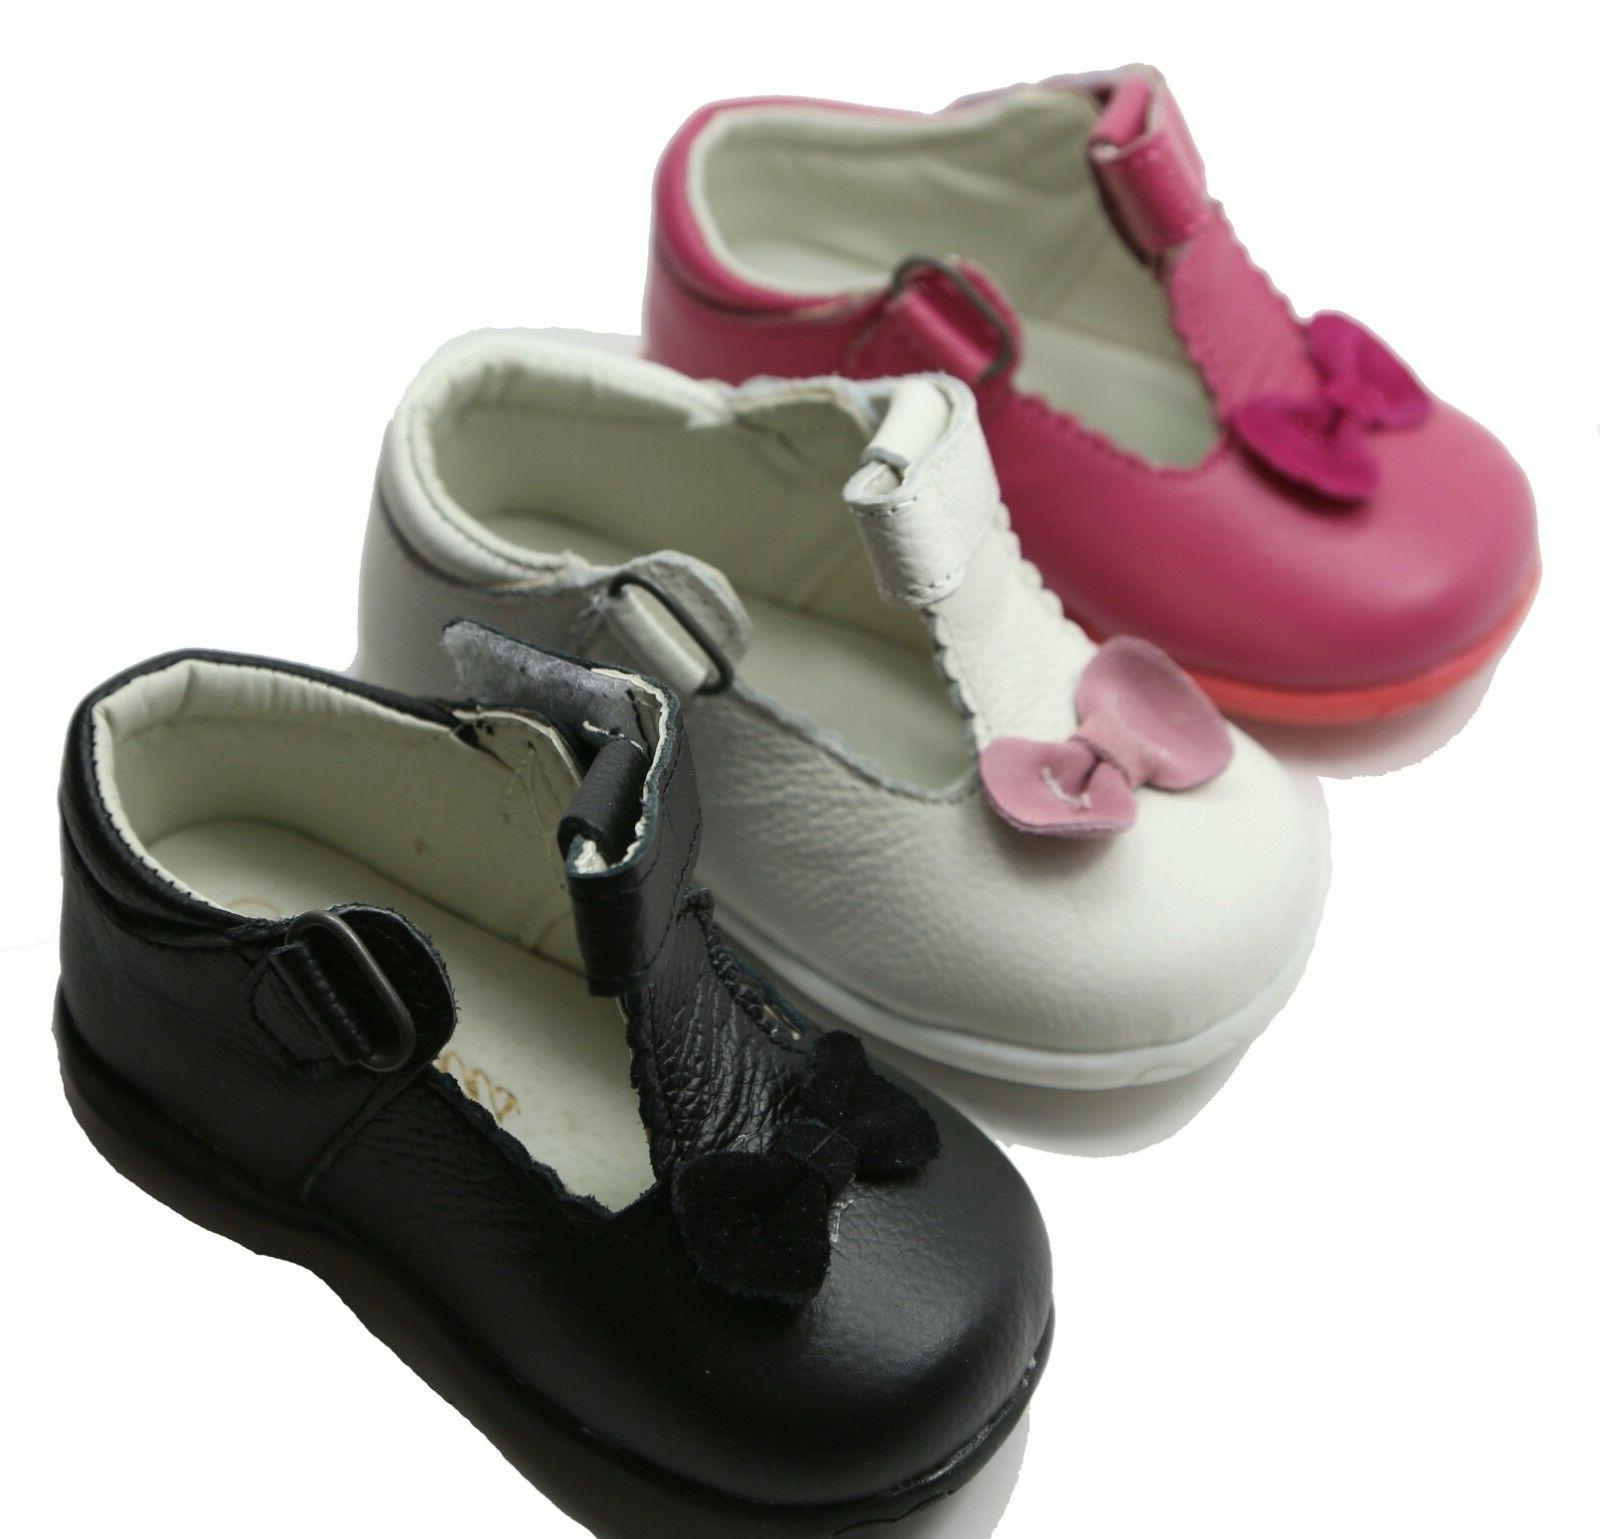 New baby girl shoes sandals Genuine Leather 3,4,5,6,7